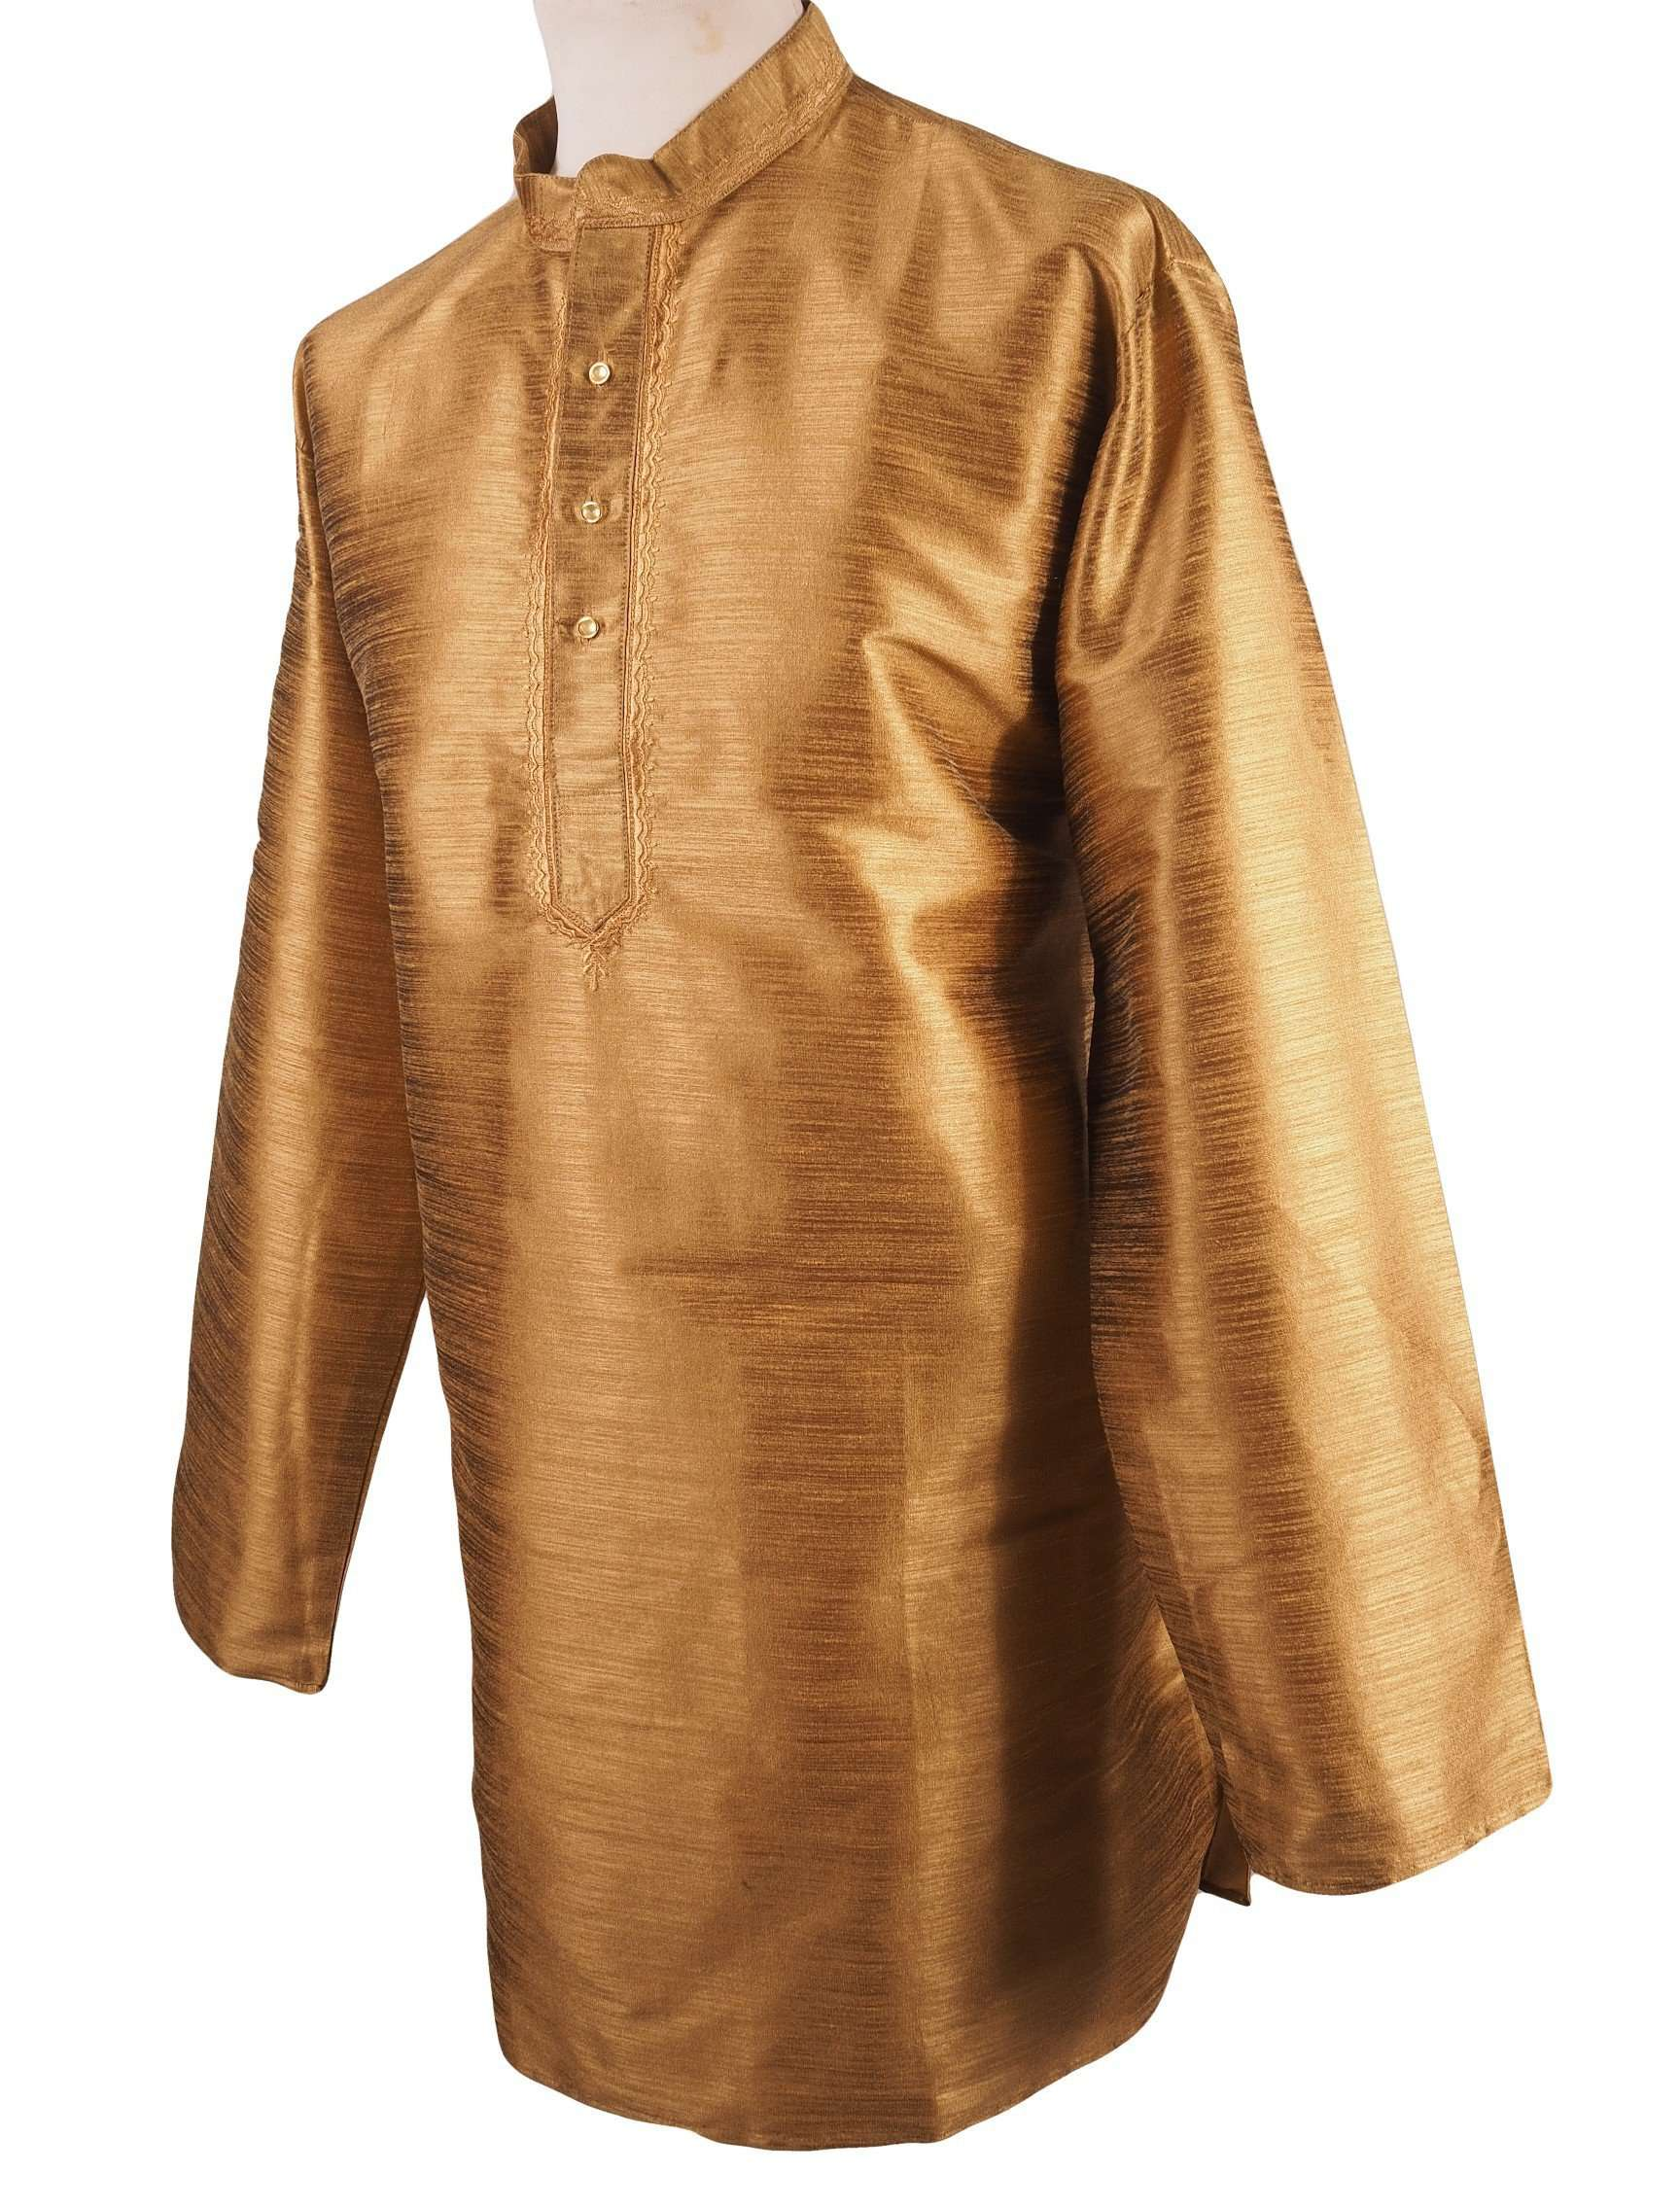 "Prachy Creations : Corsa - Antique Gold Kurta top - Indian shirt - Ideal on a pair of jeans H0718, 46"" / Antique"